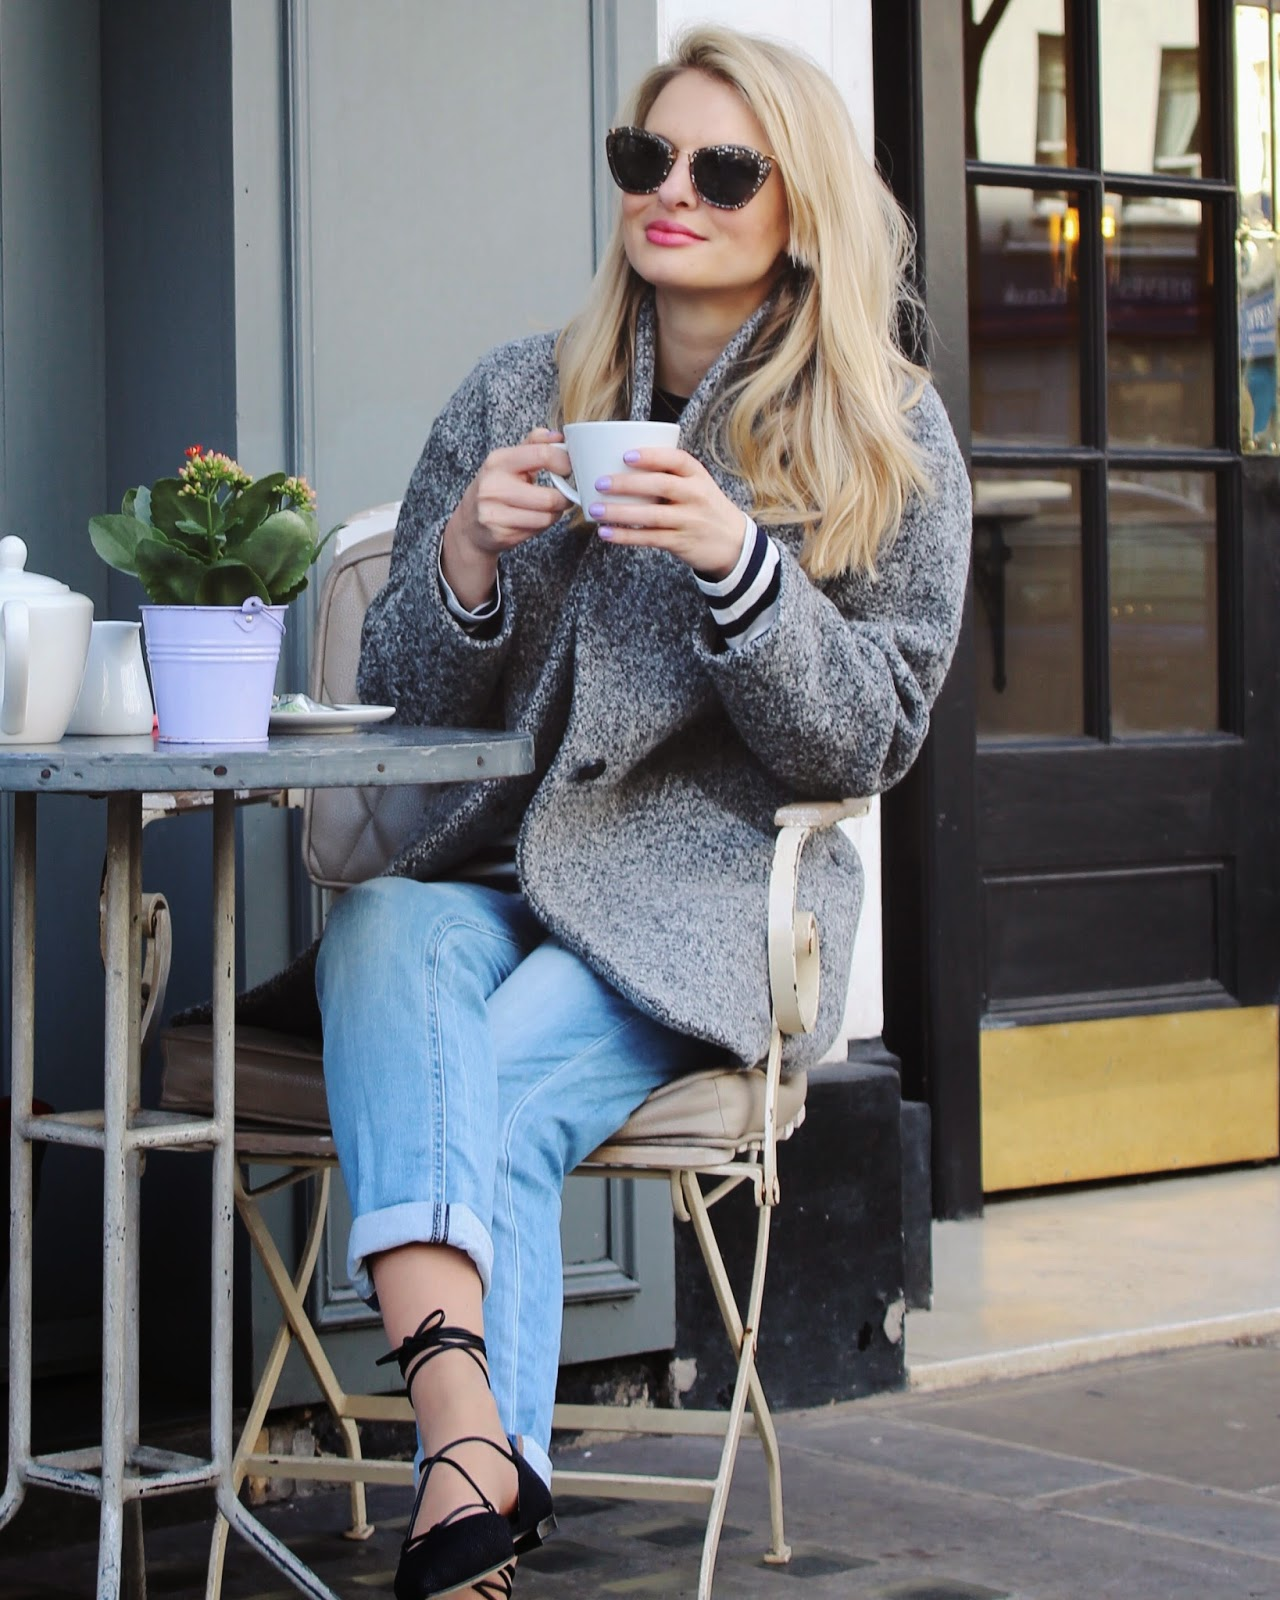 London, london street style, boyfriend jeans, lace up flats, stuart weitzman lace up flats, pointy flats, pointed flats, five jeans, iro coat, miu miu sunglasses, cat eye sunglasses, london blogger, london cafe, aubaine cafe